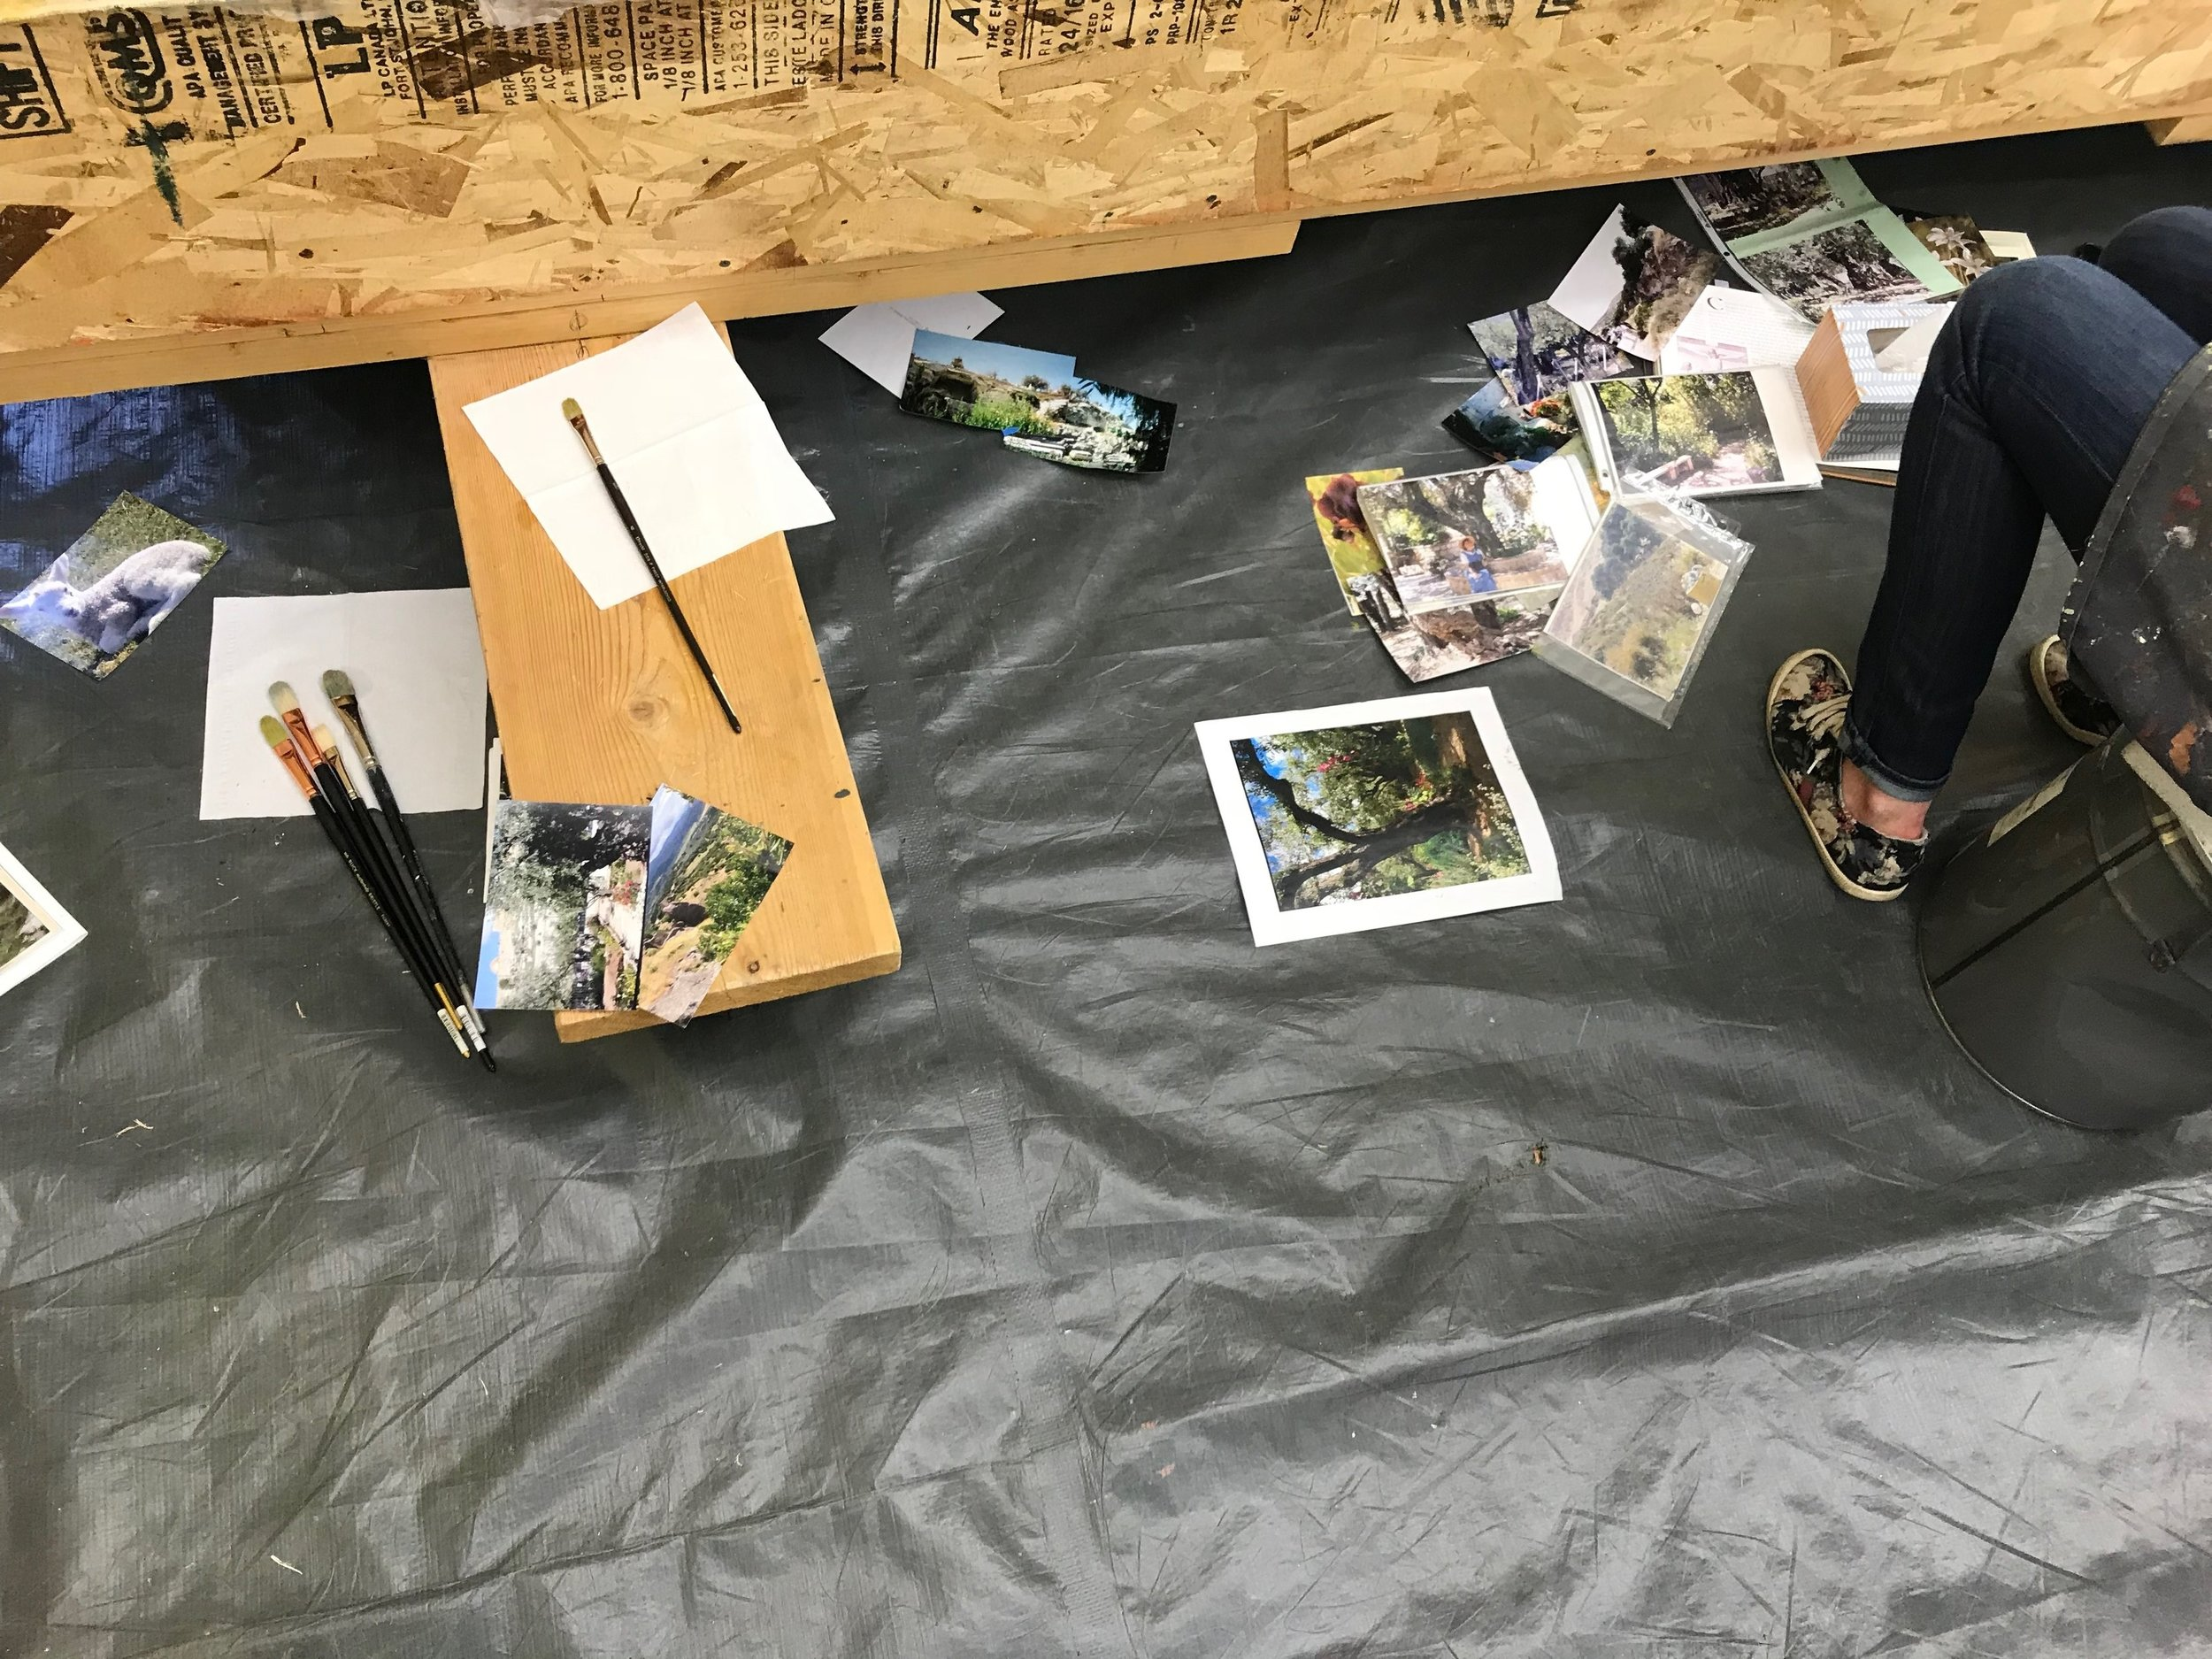 Though we couldn't photograph the murals being worked on in Christensen's studio, it was inspiring to see the menage of photos and reference materials being used by artists to paint accurate depictions of gardens in the Holy Land for the Vernal Temple.